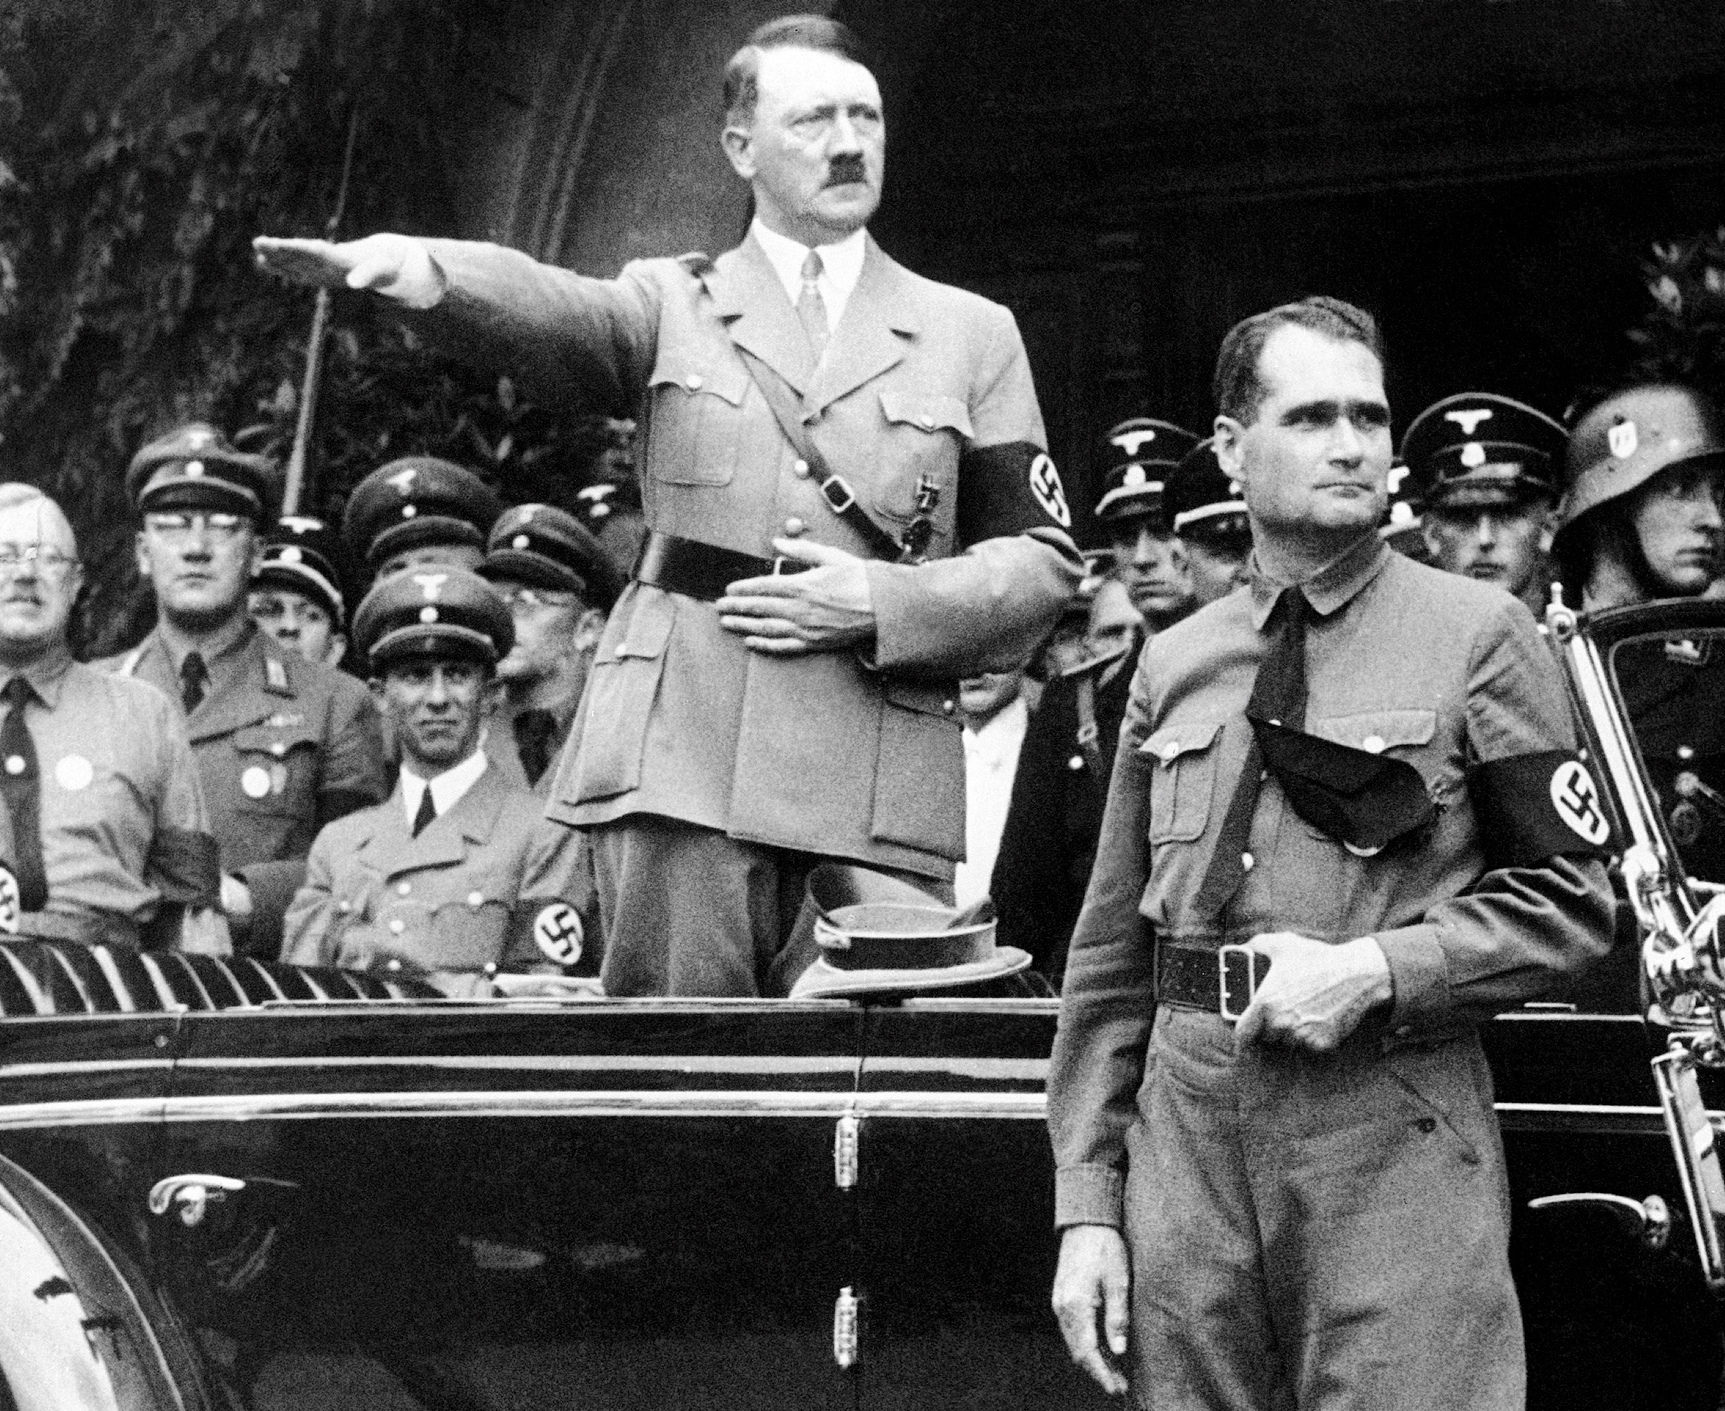 The Dec. 30 1938 file photo shows German Chancellor Adolf Hitler and his personal representative Rudolf Hess, right, during a parade in Berlin, Germany, on Dec. 30, 1938. Minister of Propaganda Dr. Joseph Goebbels can be seen on the left side next to Hitler. The skeletal remains of Adolf Hitler's deputy Hess, have been removed from their grave in a small Bavarian town that had become a pilgrimage site for neo-Nazis. The administrator of the cemetery in Wunsiedel told The Associated Press on Thursday, July 21, 2011 that the bones were exhumed early Wednesday morning. (AP Photo)